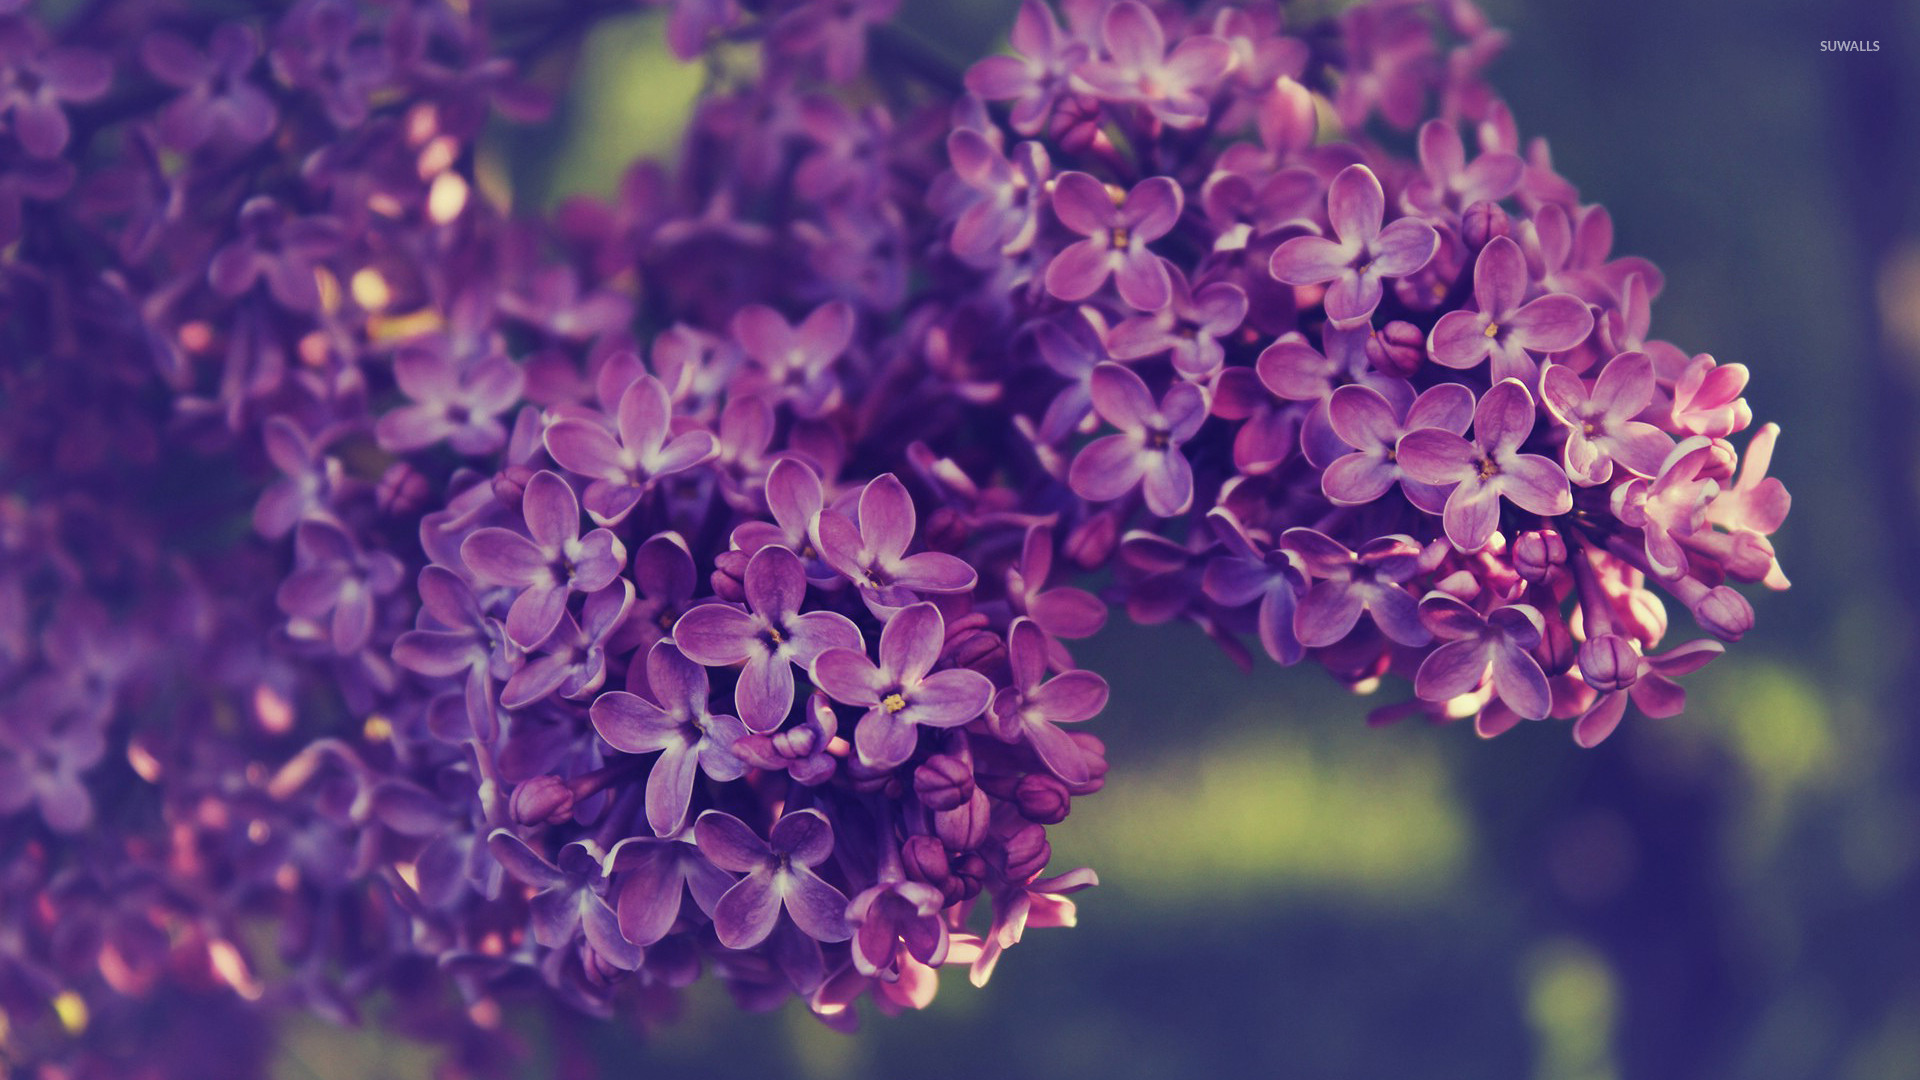 Lilac background wallpaper wallpapersafari for Lilac butterfly wallpaper